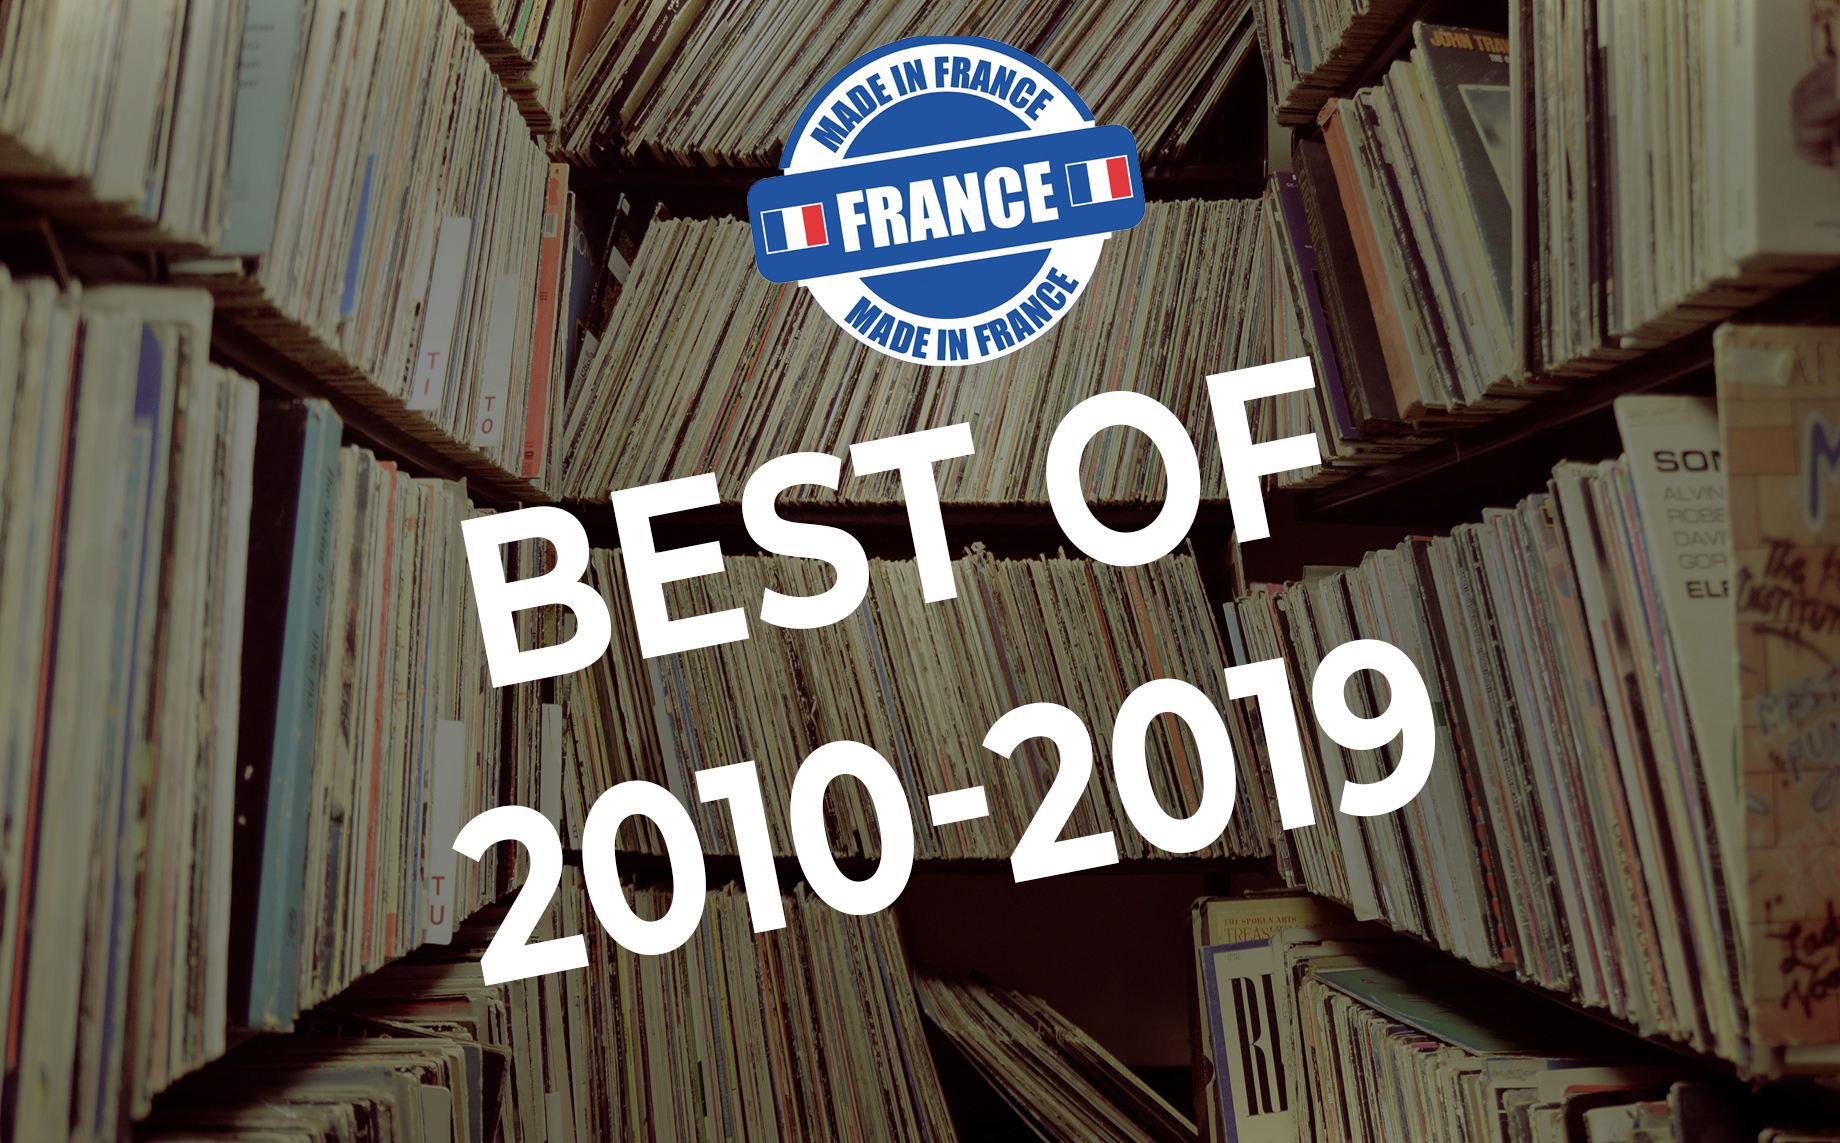 Top 10 albums rock français 2010-2019